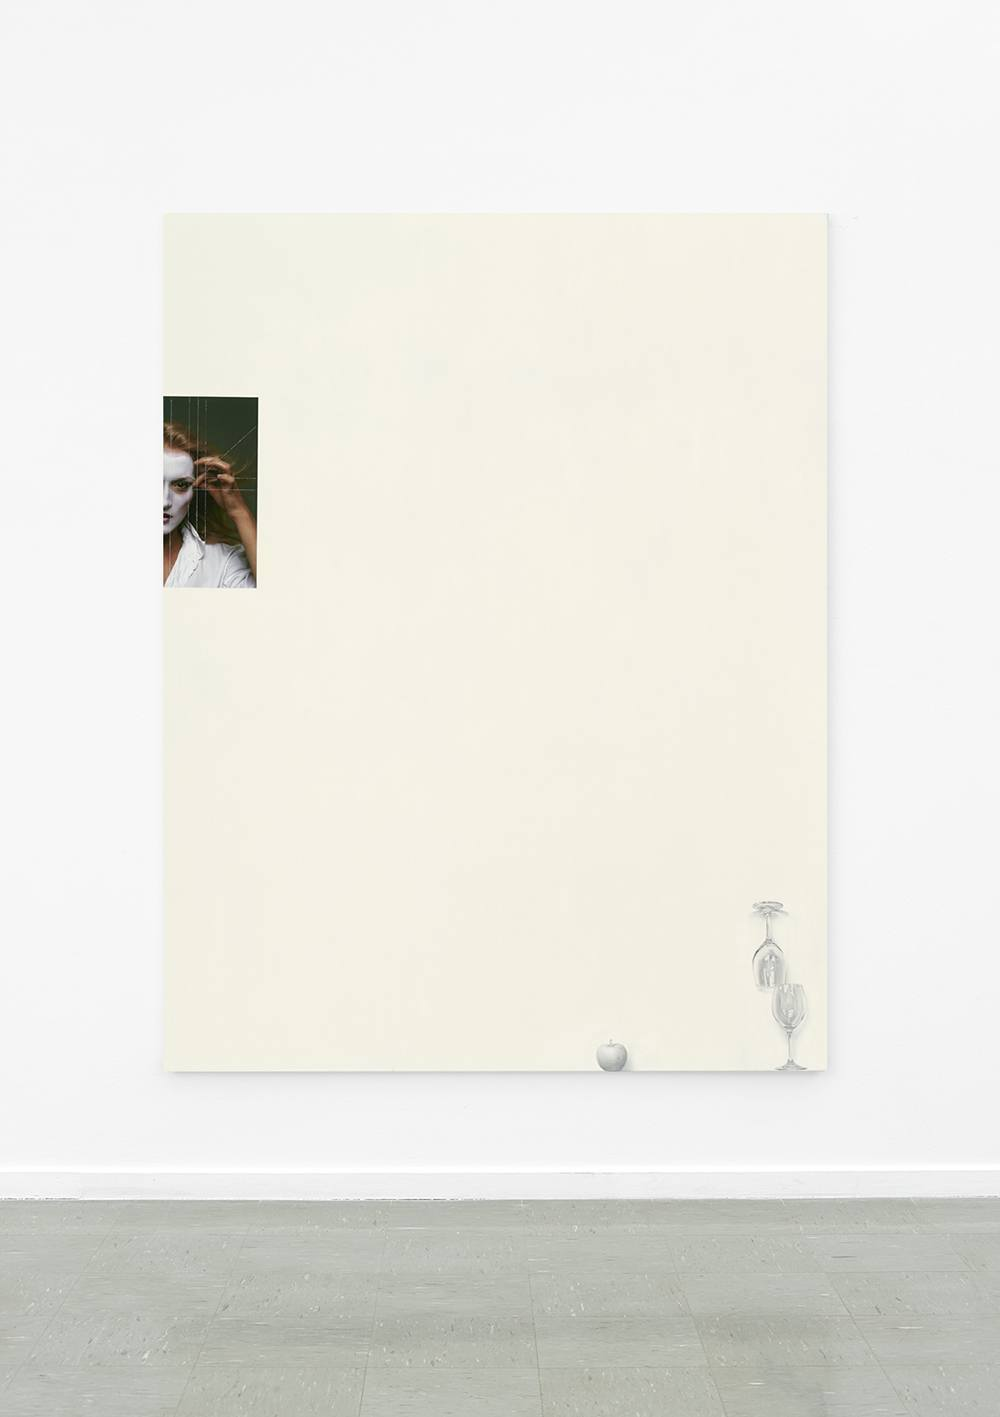 Untitled (Every Picture), oil and collage on linen - 2015 - Jackson Slattery